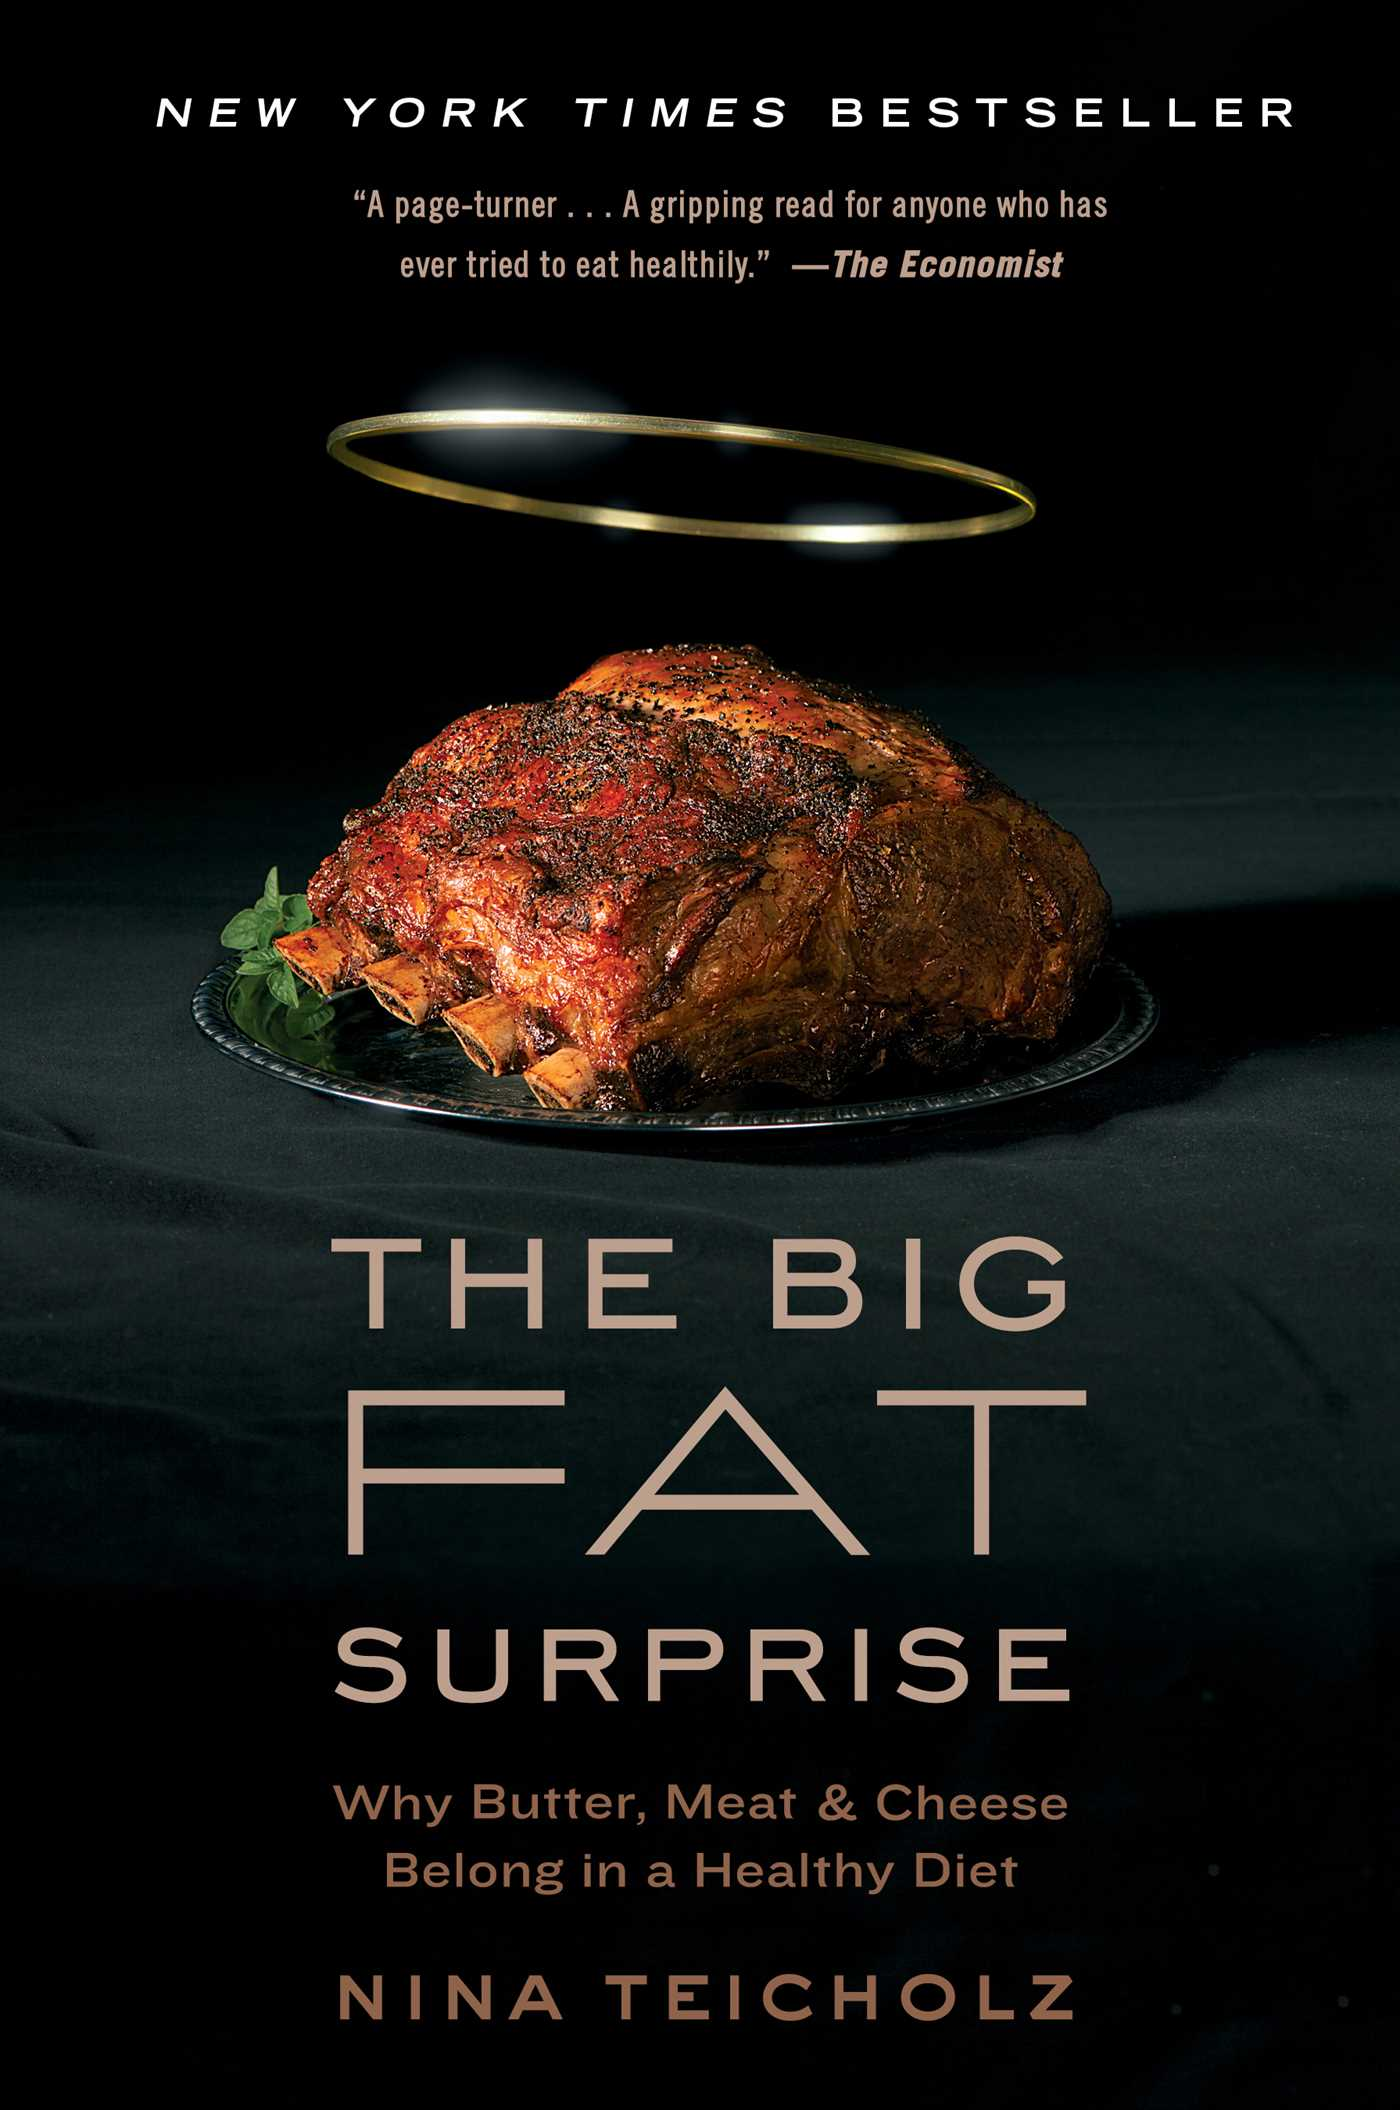 Big-fat-surprise-9781451624434_hr